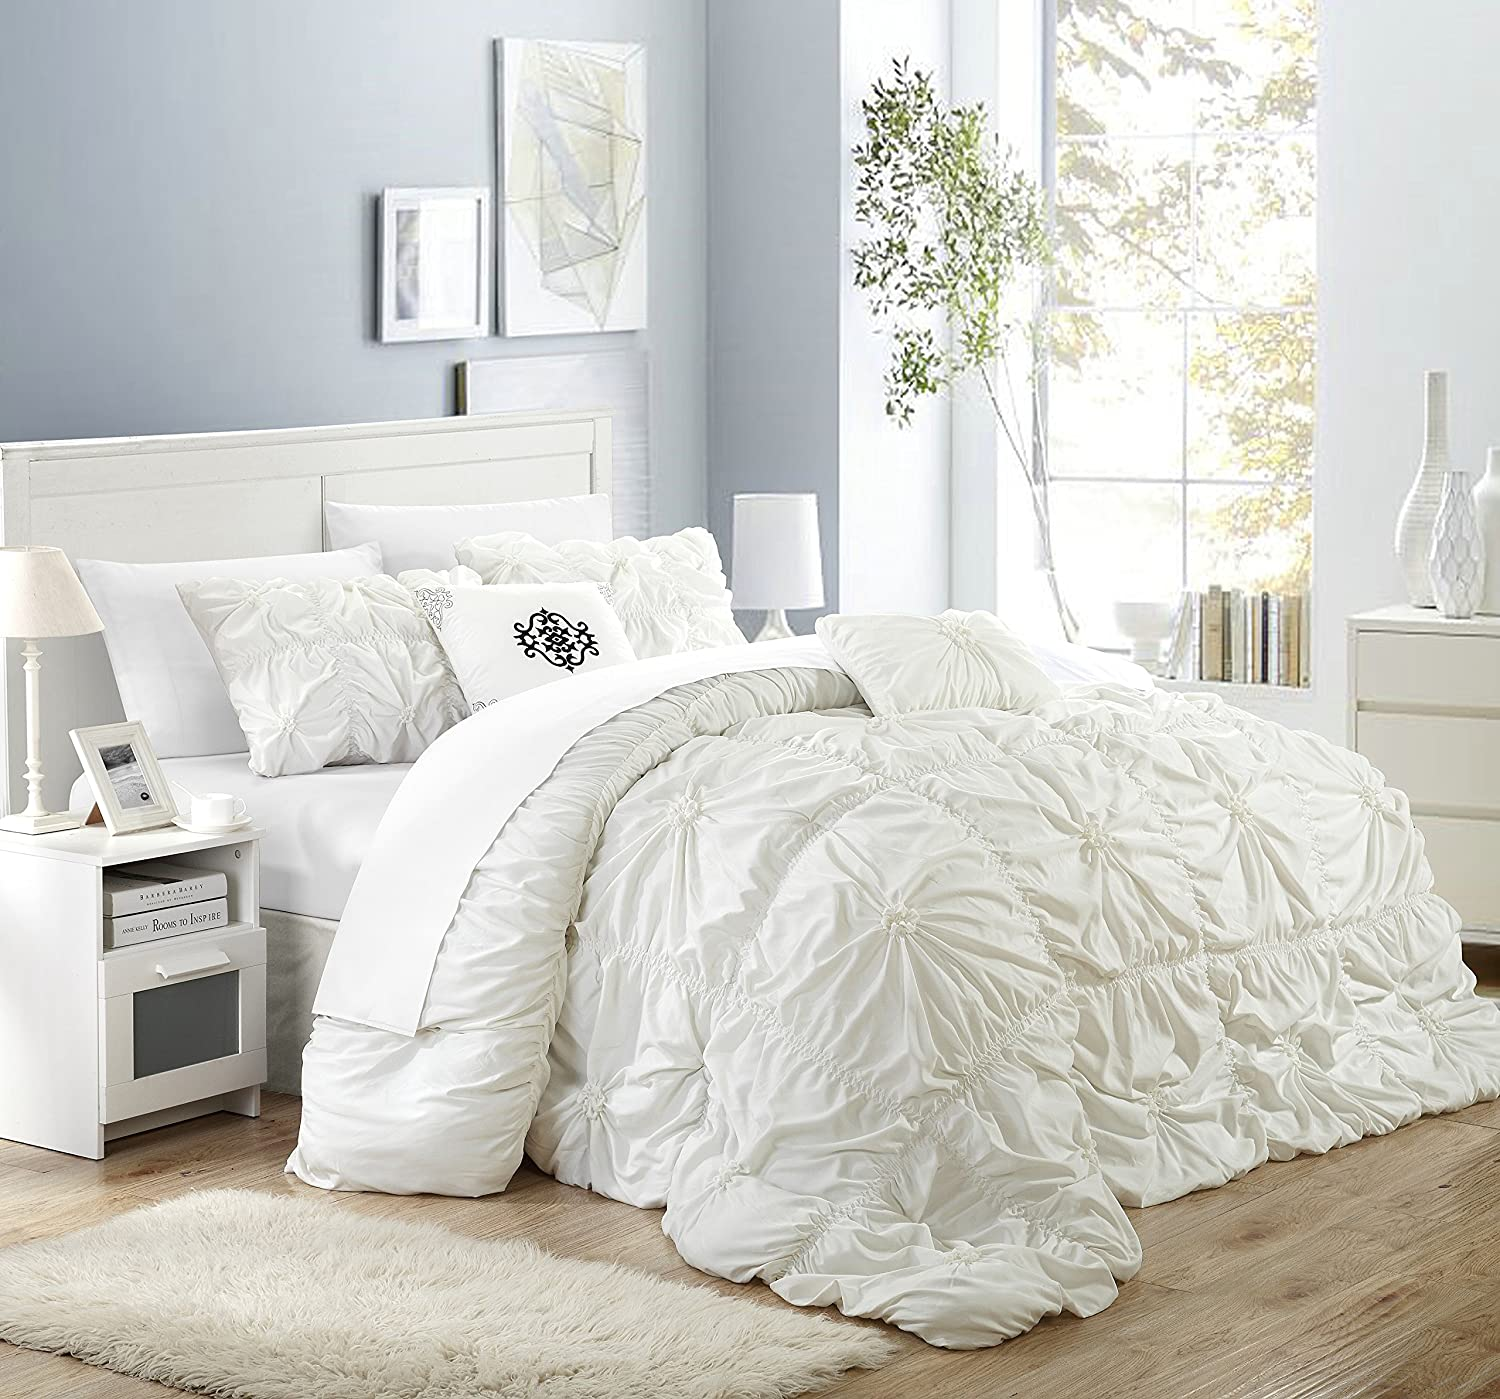 king of medium white cheap full comforter walmart target bedding fluffy sets queen bed set size